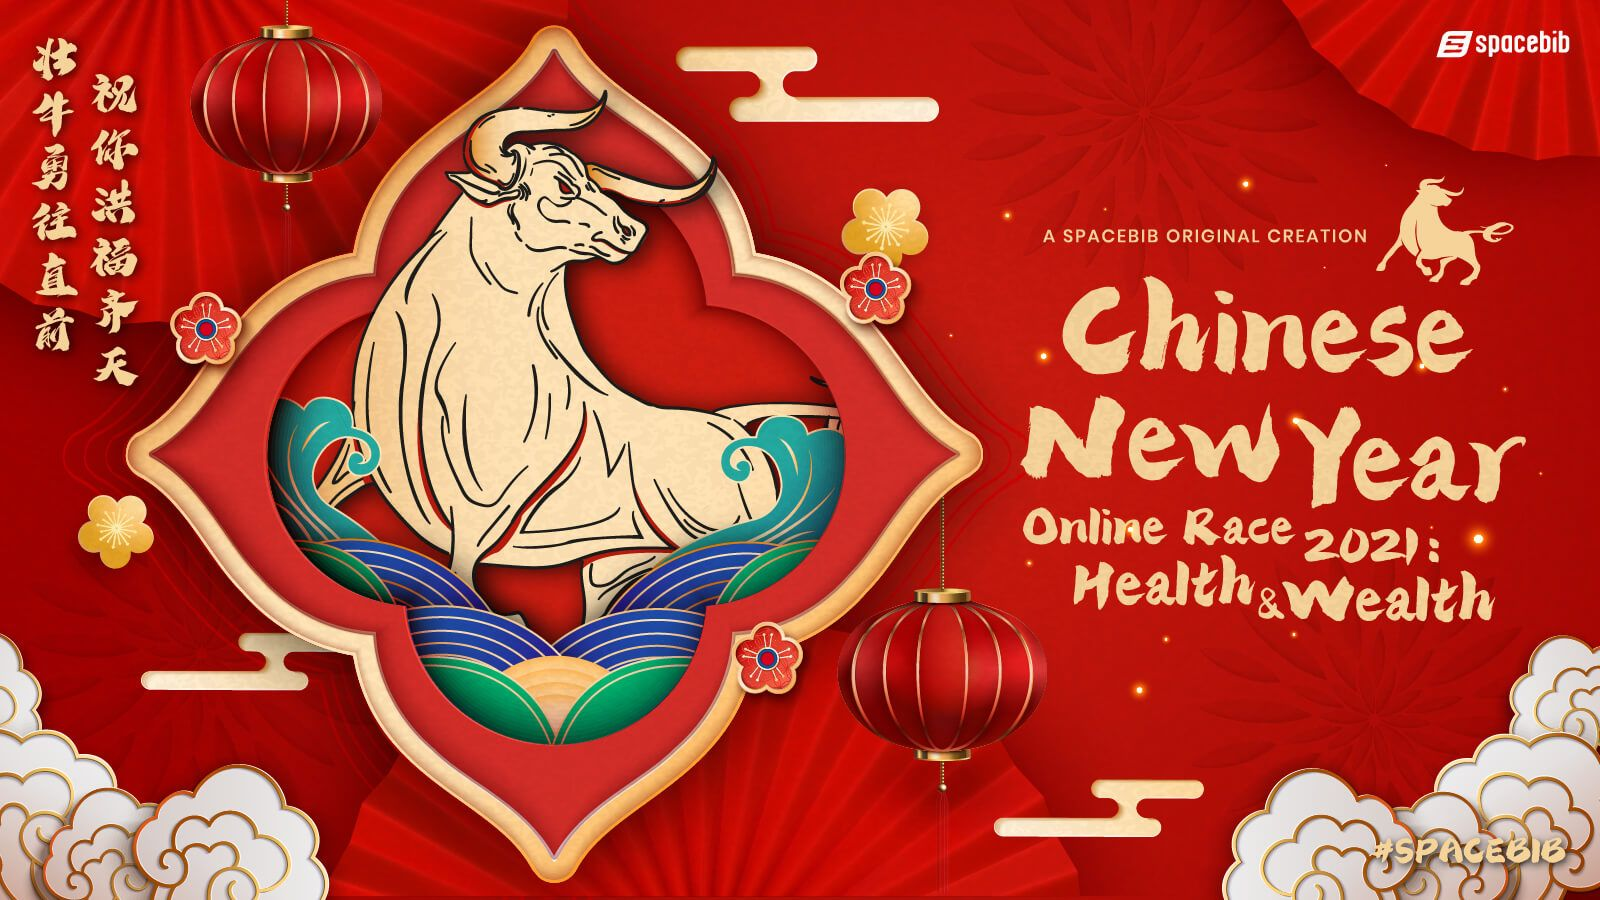 Chinese New Year Online Race 2021 Health Wealth Spacebib